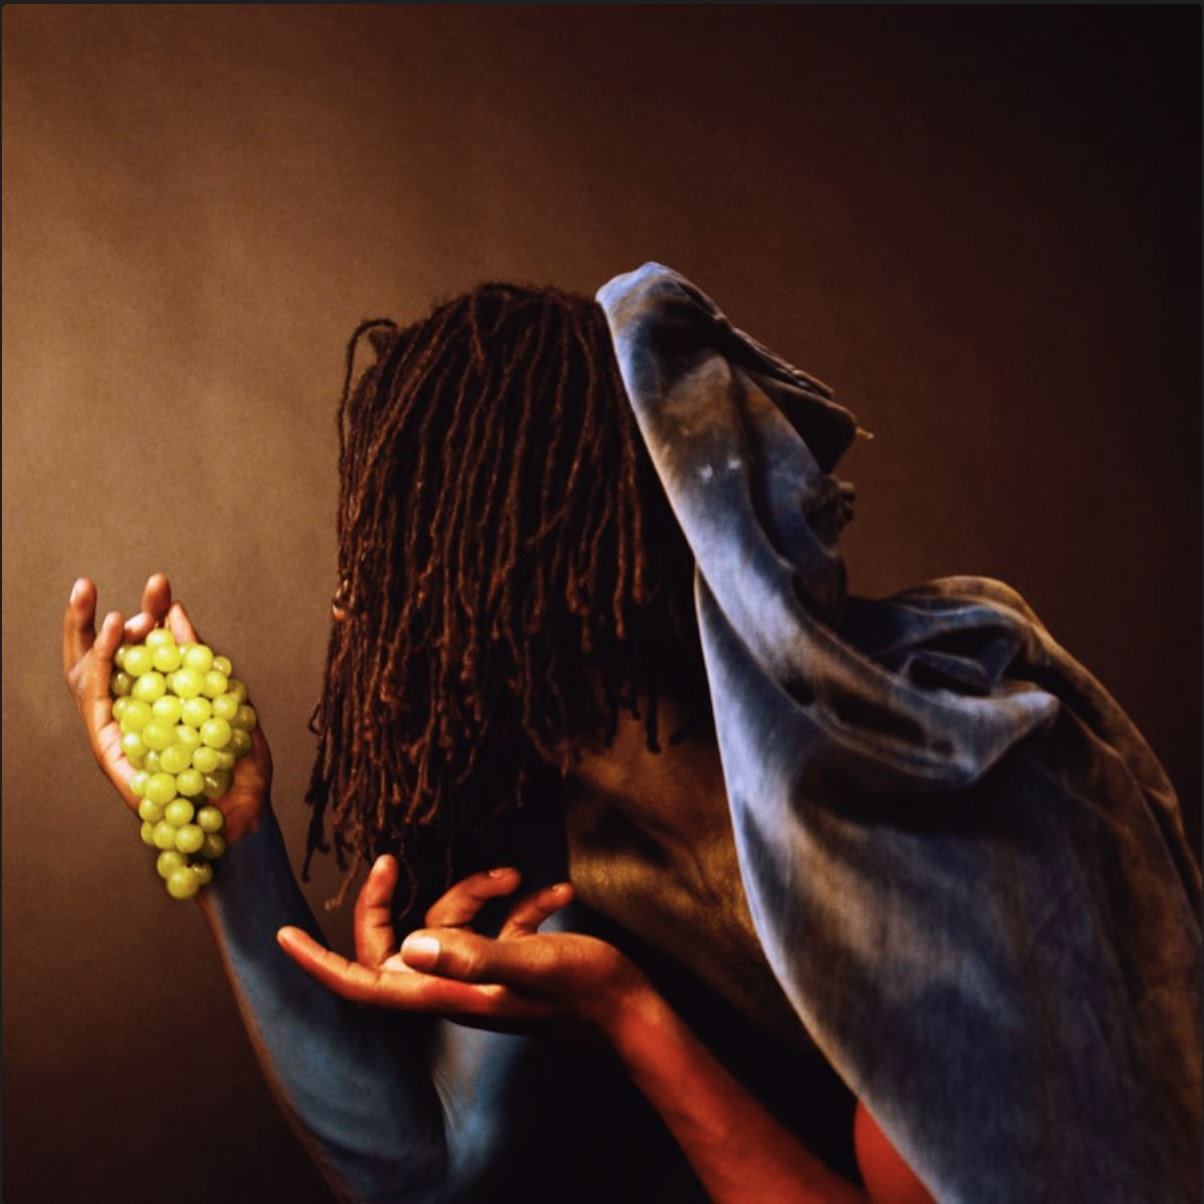 Rotimi Fani-Kayode, Grapes, 1989, Archival chromogenic print, 38.4 x 38.4 cm, 15 1/8 x 15 1/8 in